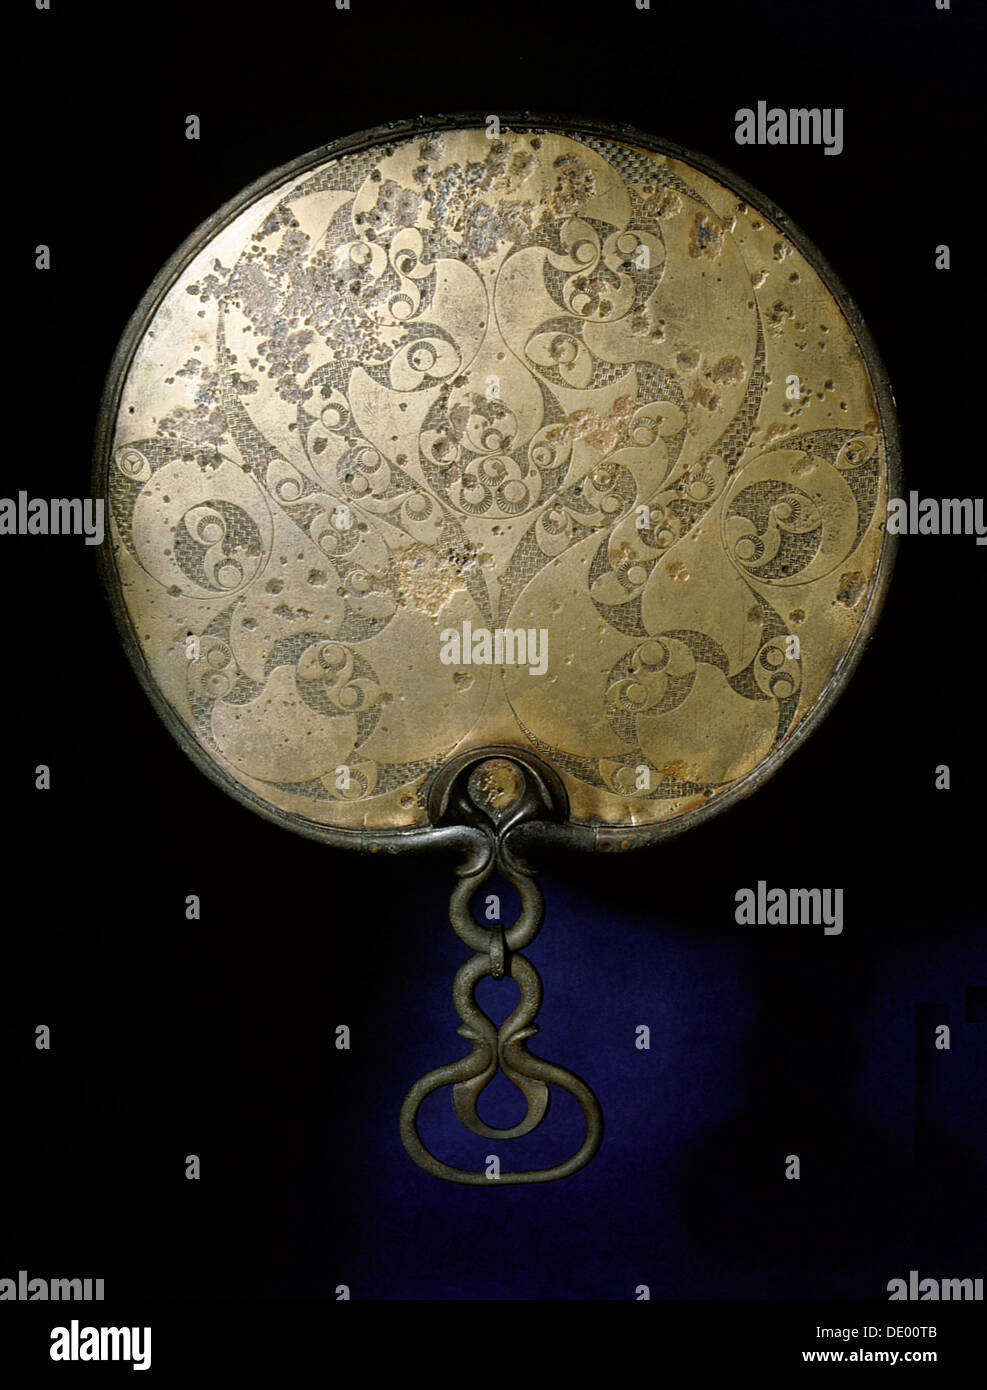 Bronze mirror with richly engraved back, Ancient British, 50 BC - 50 AD. Artist: Werner Forman - Stock Image